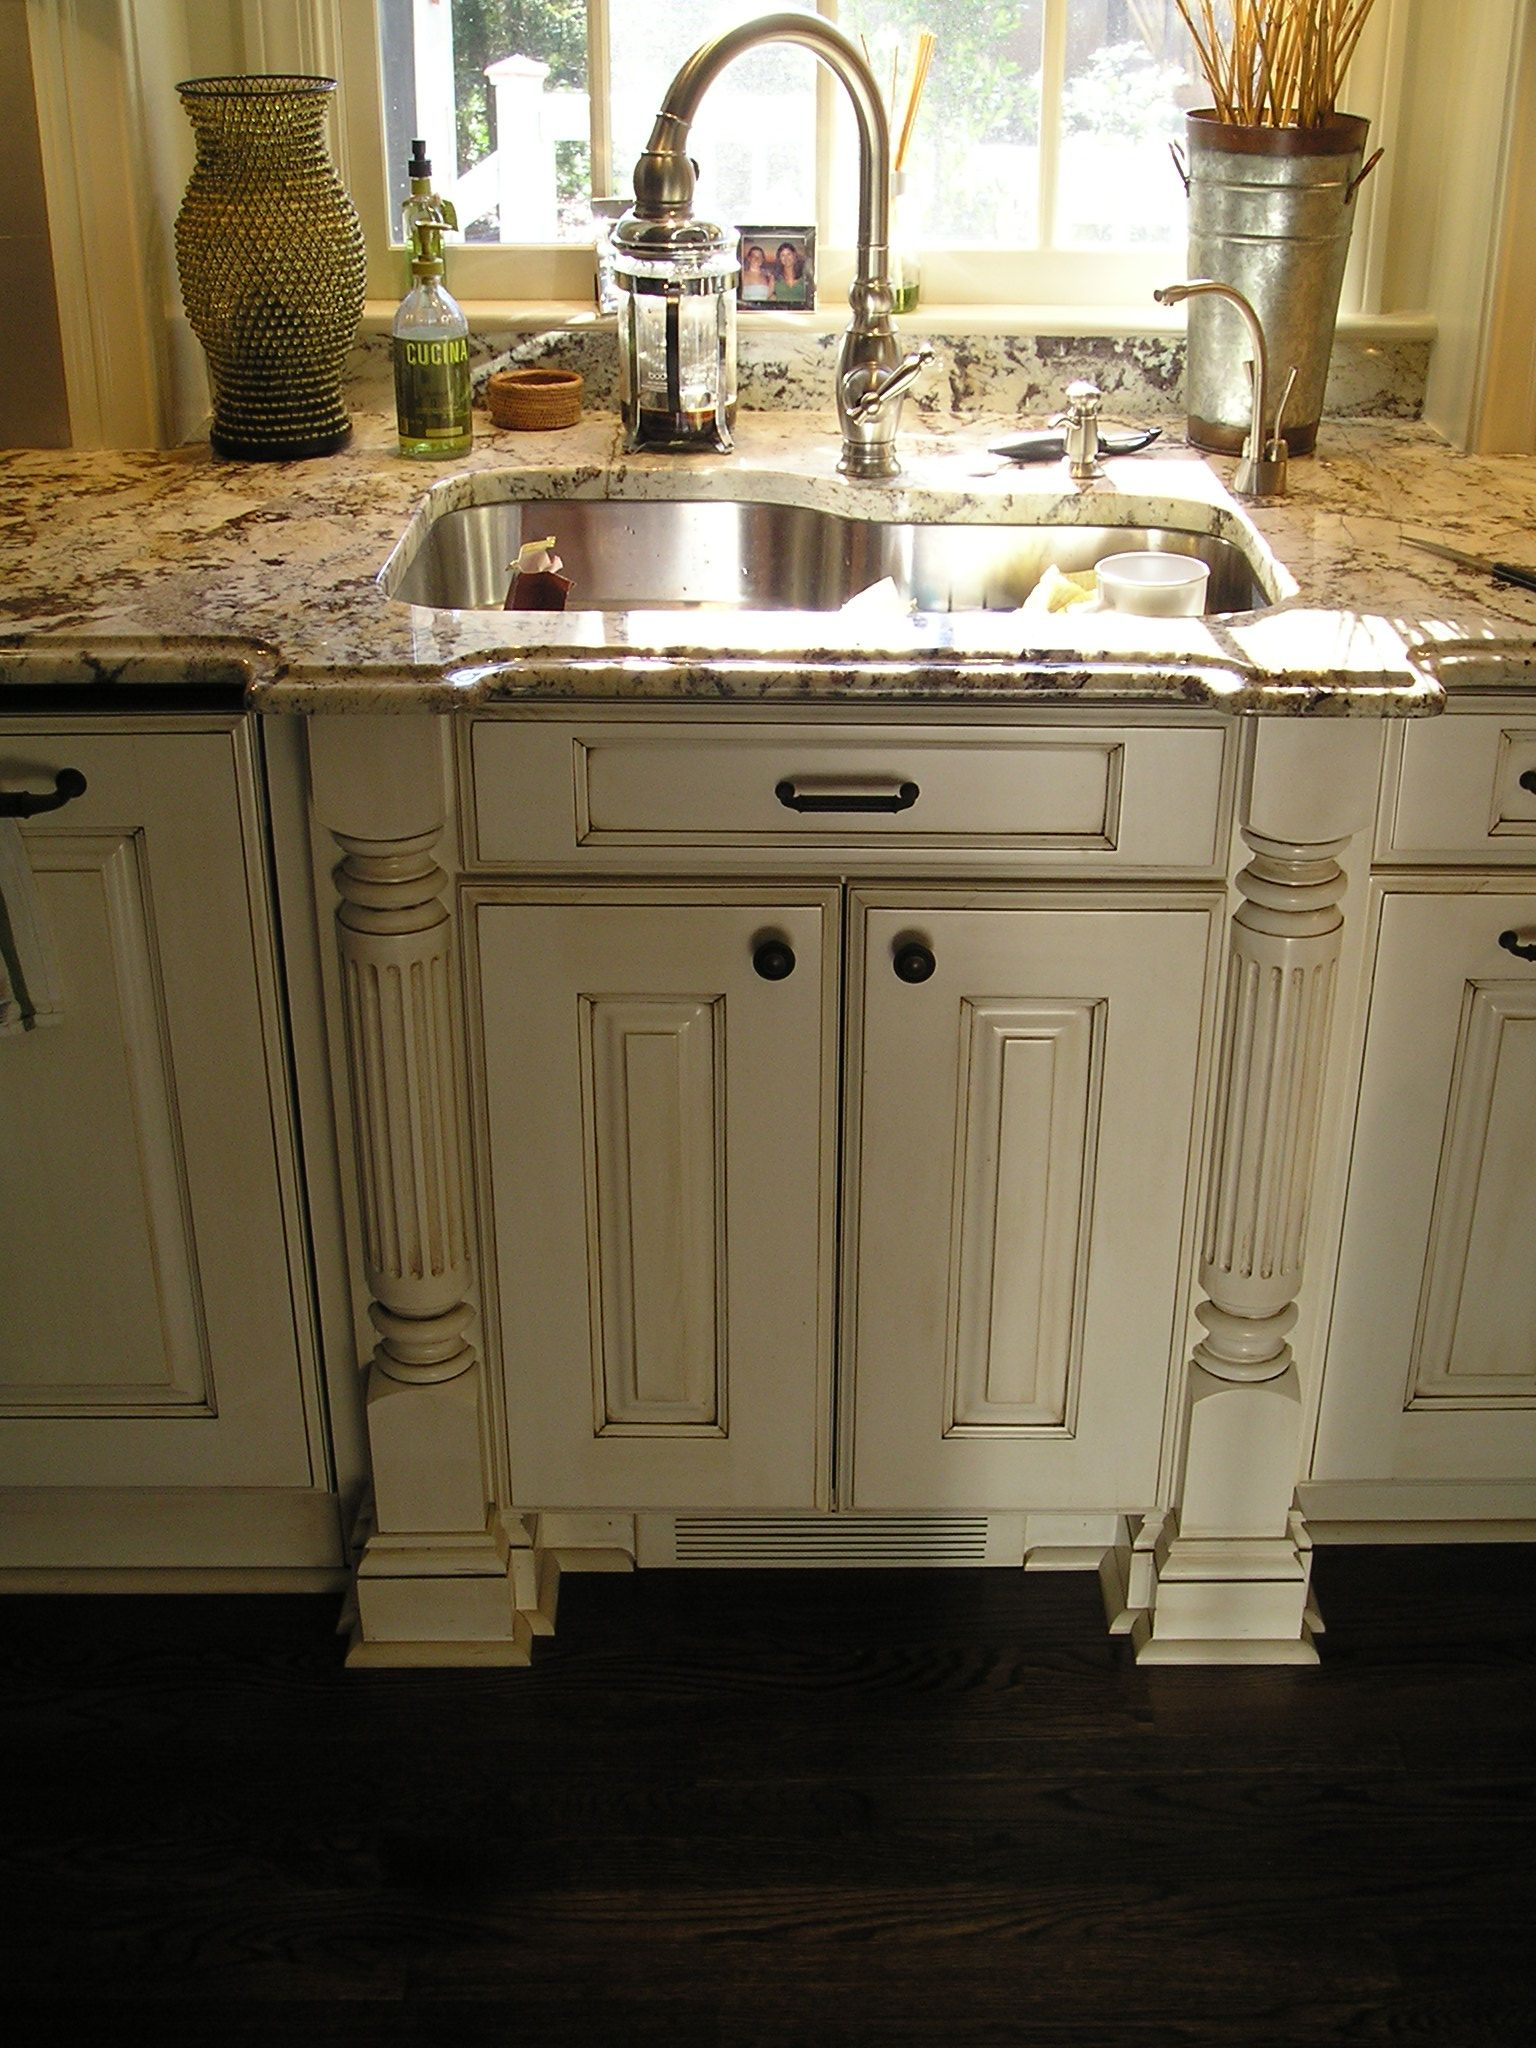 Glazed Kitchen Cabinets Glazed Kitchen Cabinets White Cabinets With Dark Wood